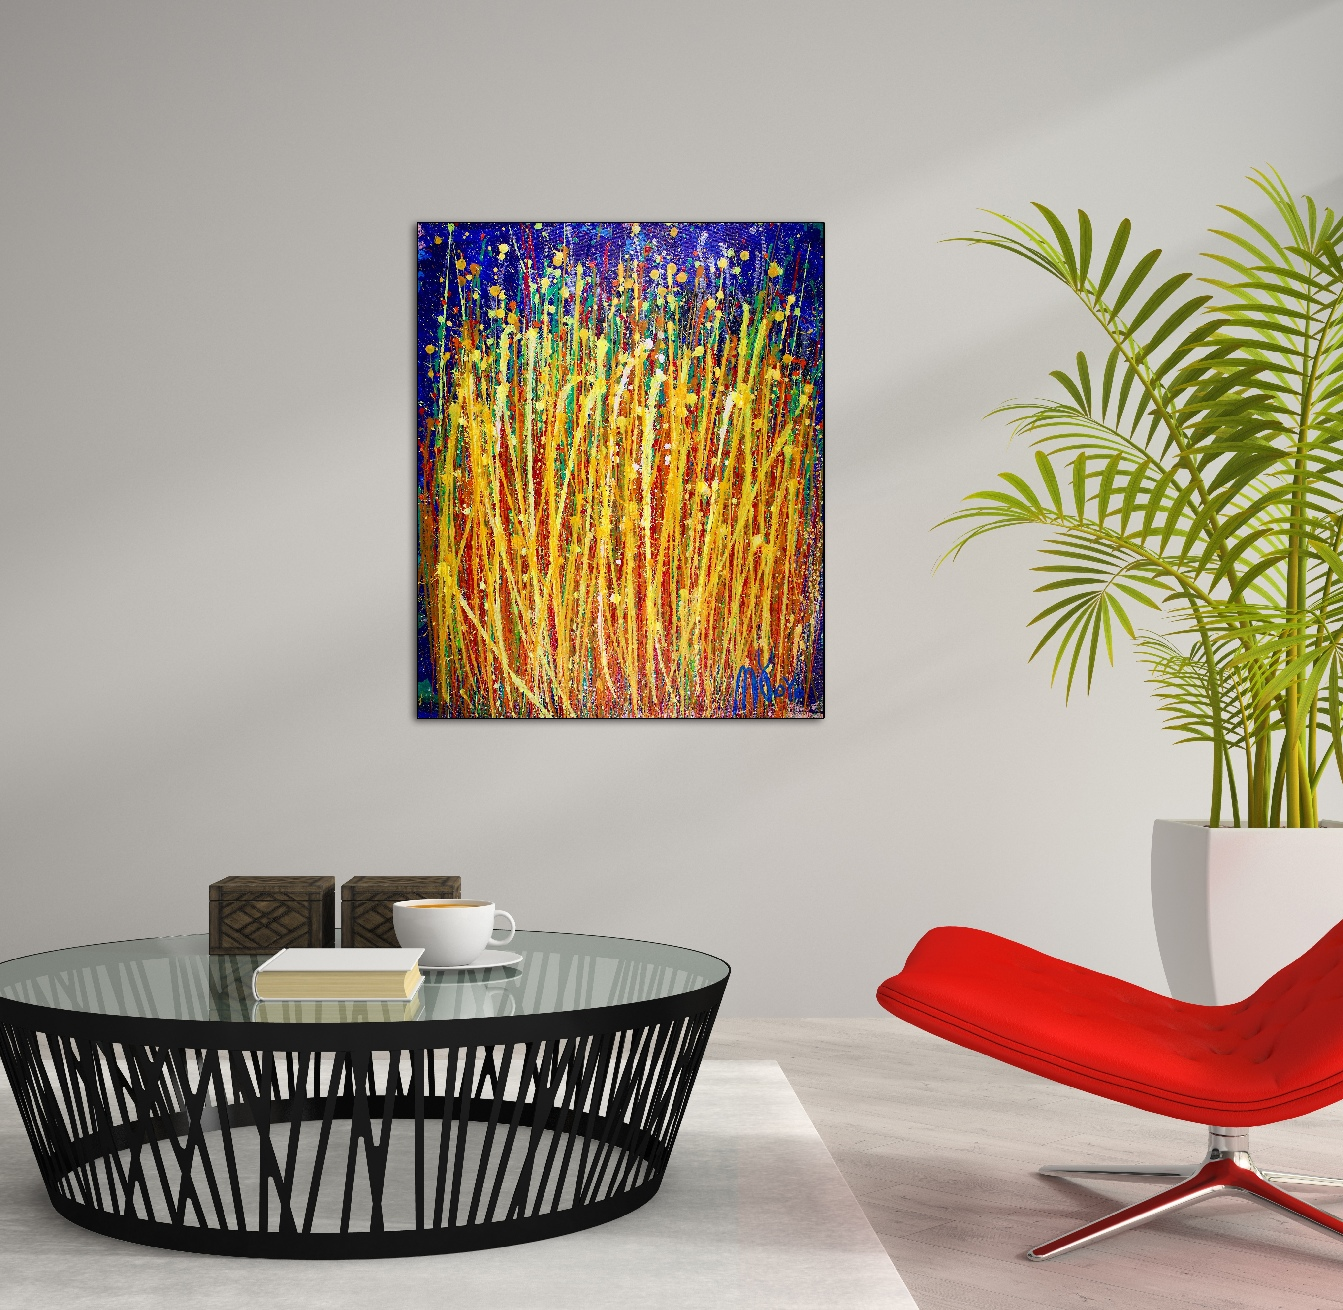 Drizzles In Motion by abstract artist painter - Nestor Toro